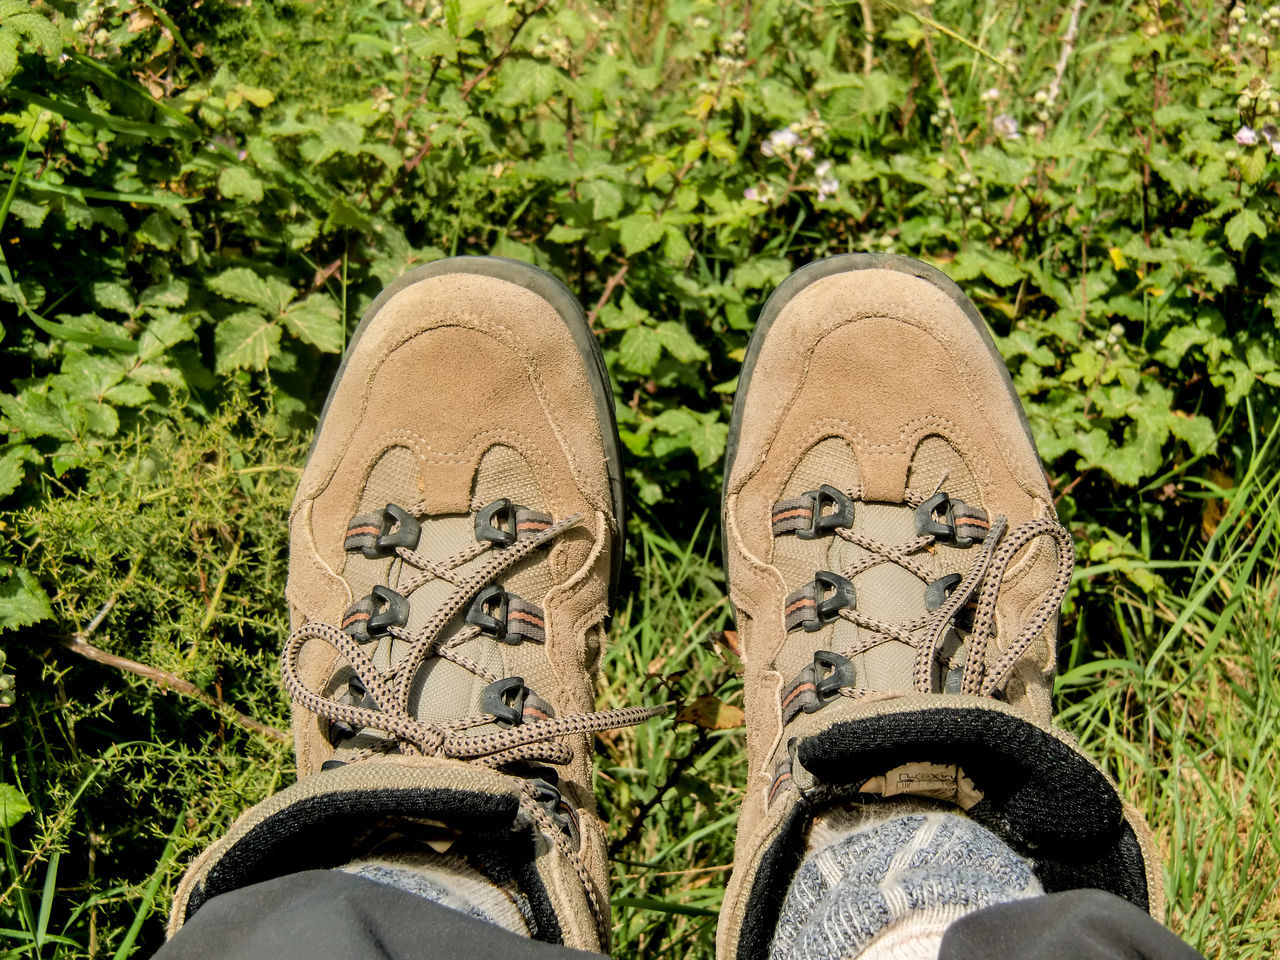 shoe, one person, low section, real people, human leg, human body part, personal perspective, human foot, canvas shoe, standing, pair, shoelace, day, lifestyles, men, outdoors, grass, close-up, one man only, nature, adult, people